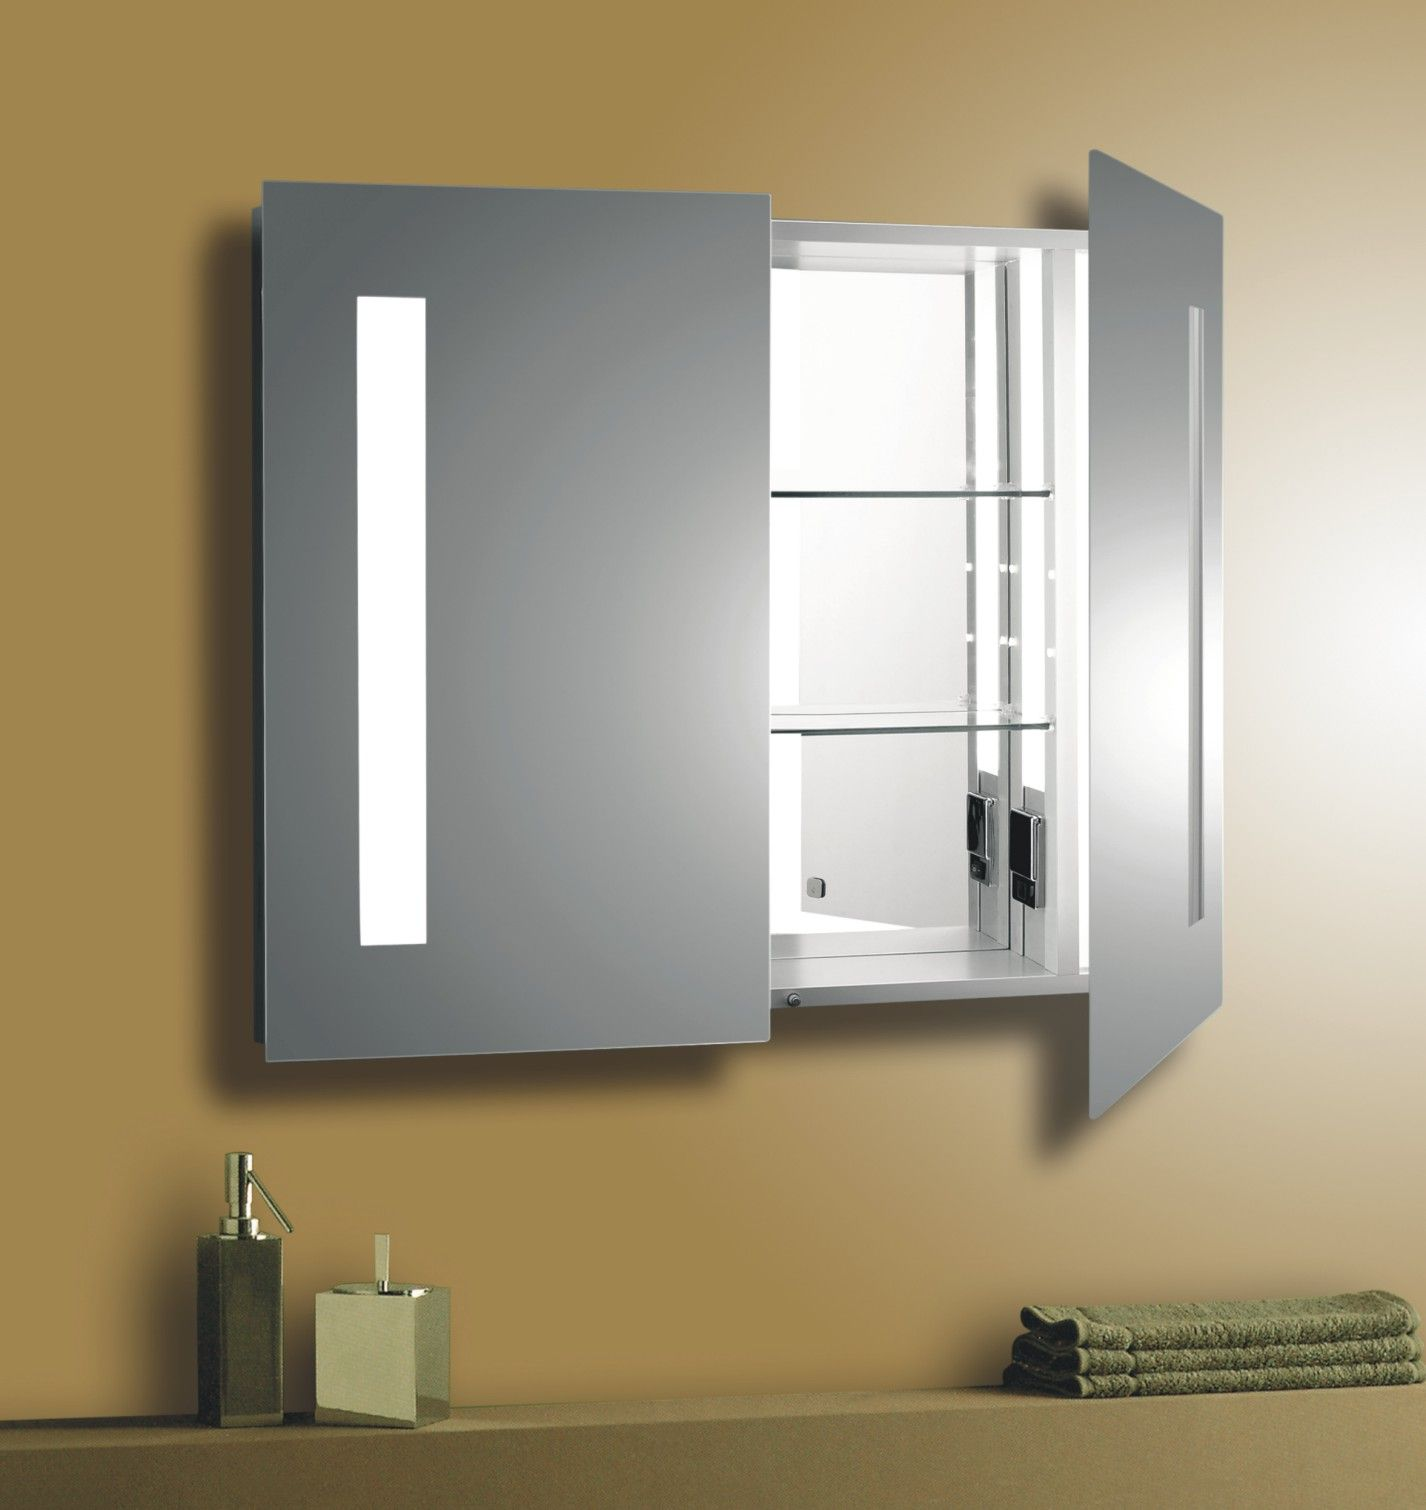 Bathroom Cupboard Mirror Cool Oak Medicine Cabinet With Mirror And Lights And